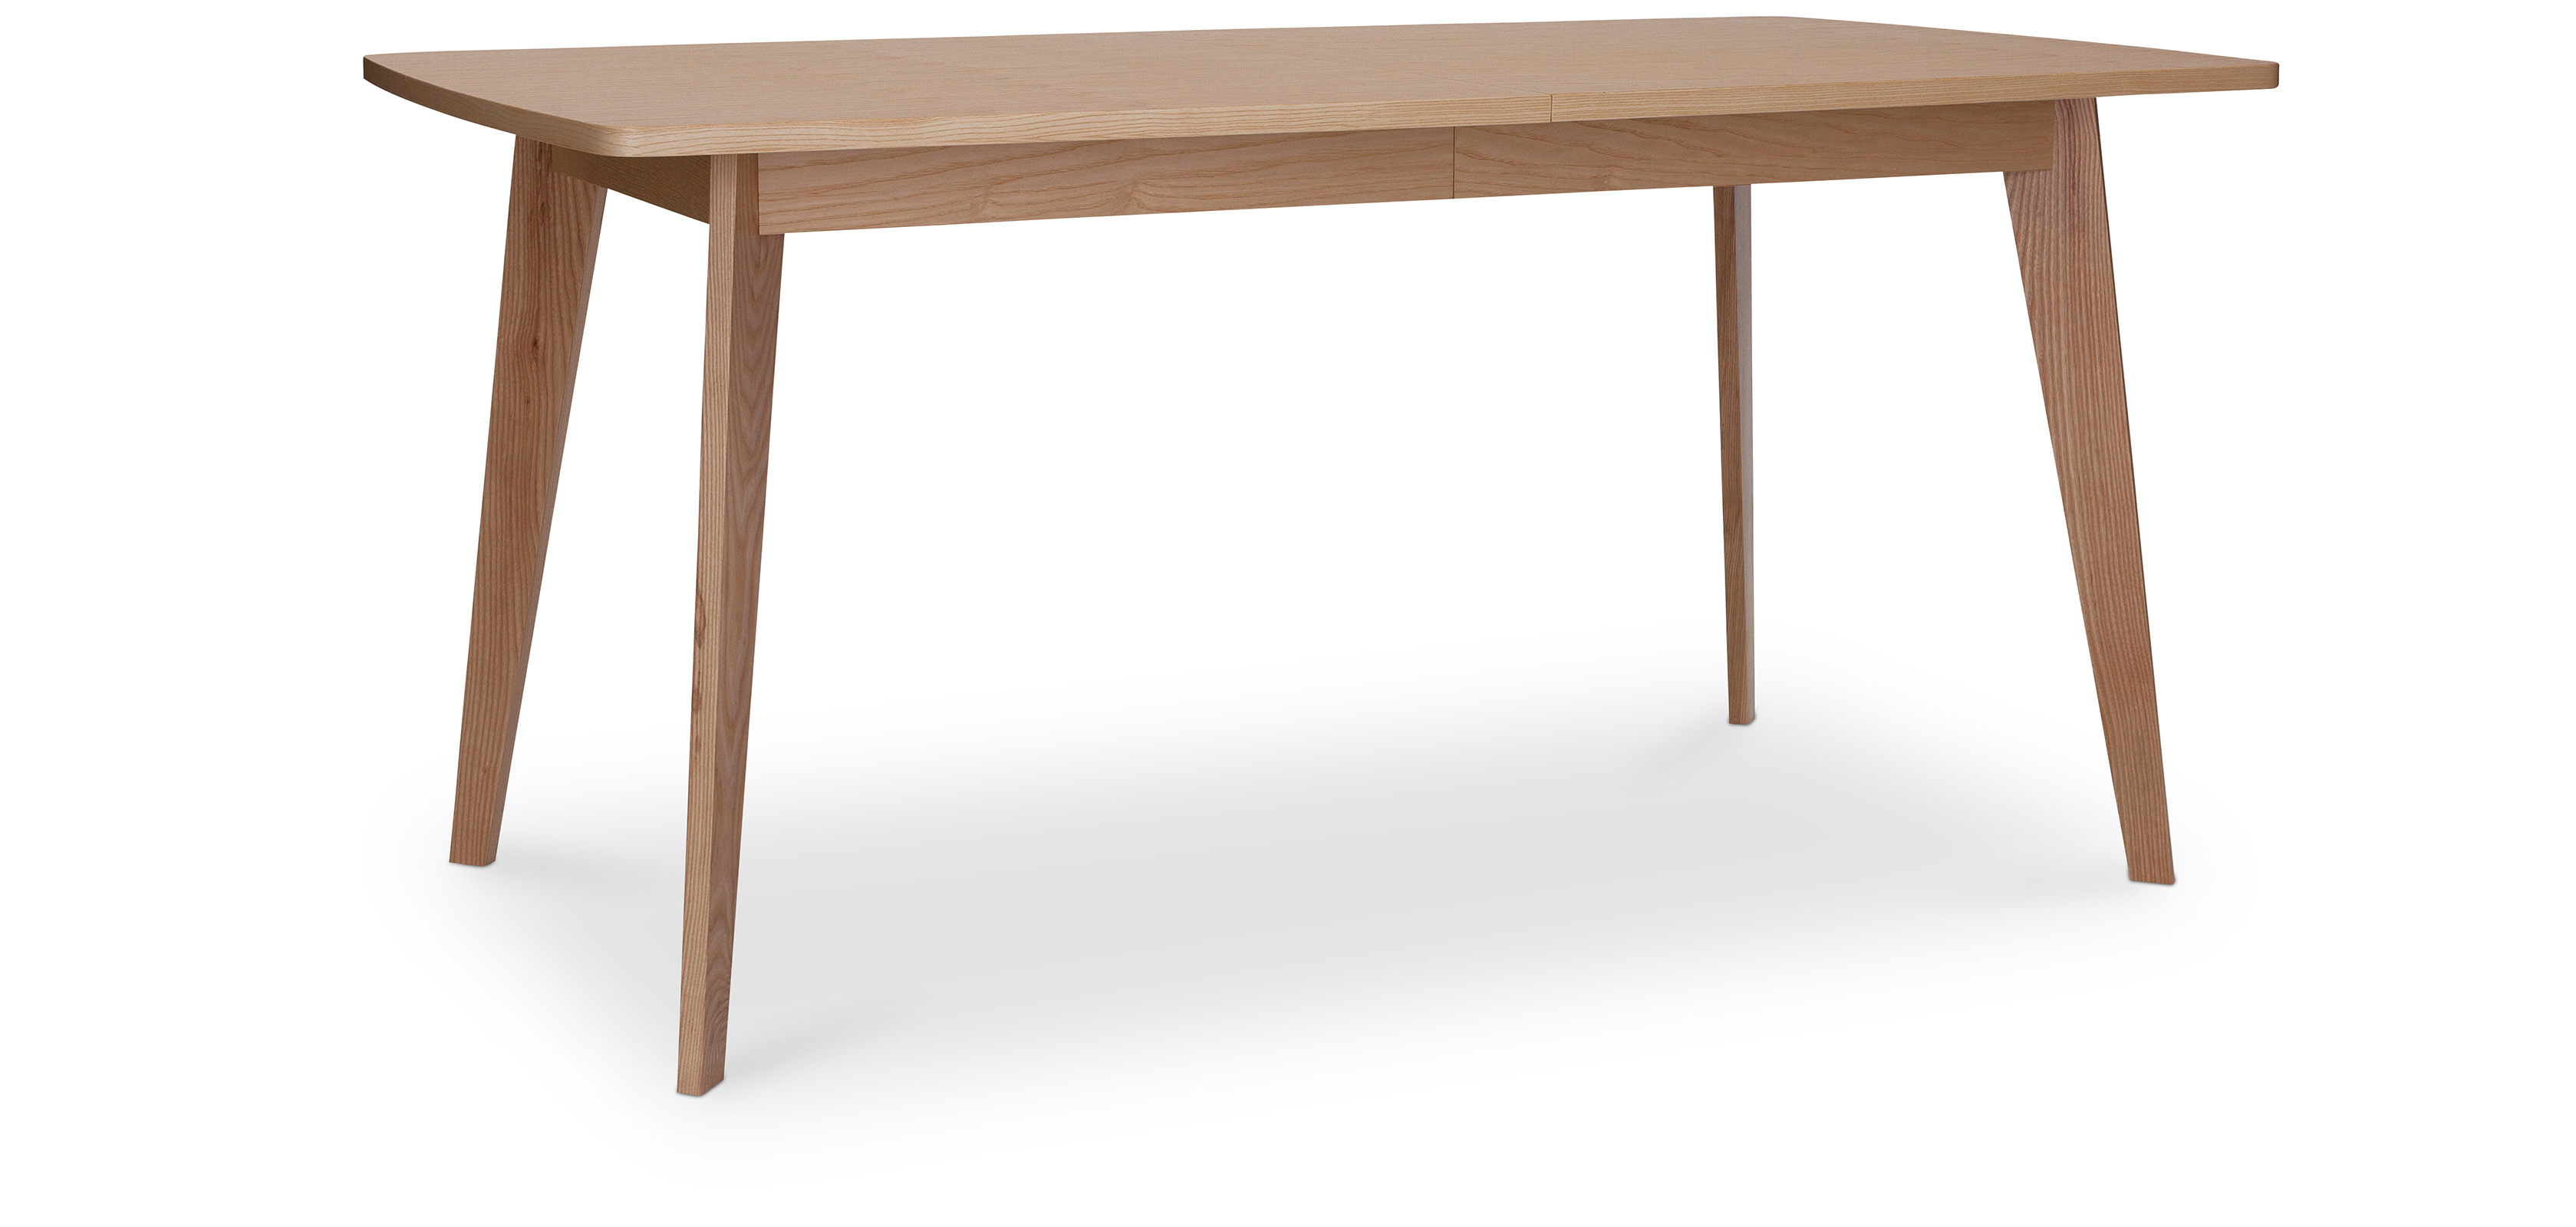 Table salle a manger scandinave valdiz for Table salle a manger yvrai